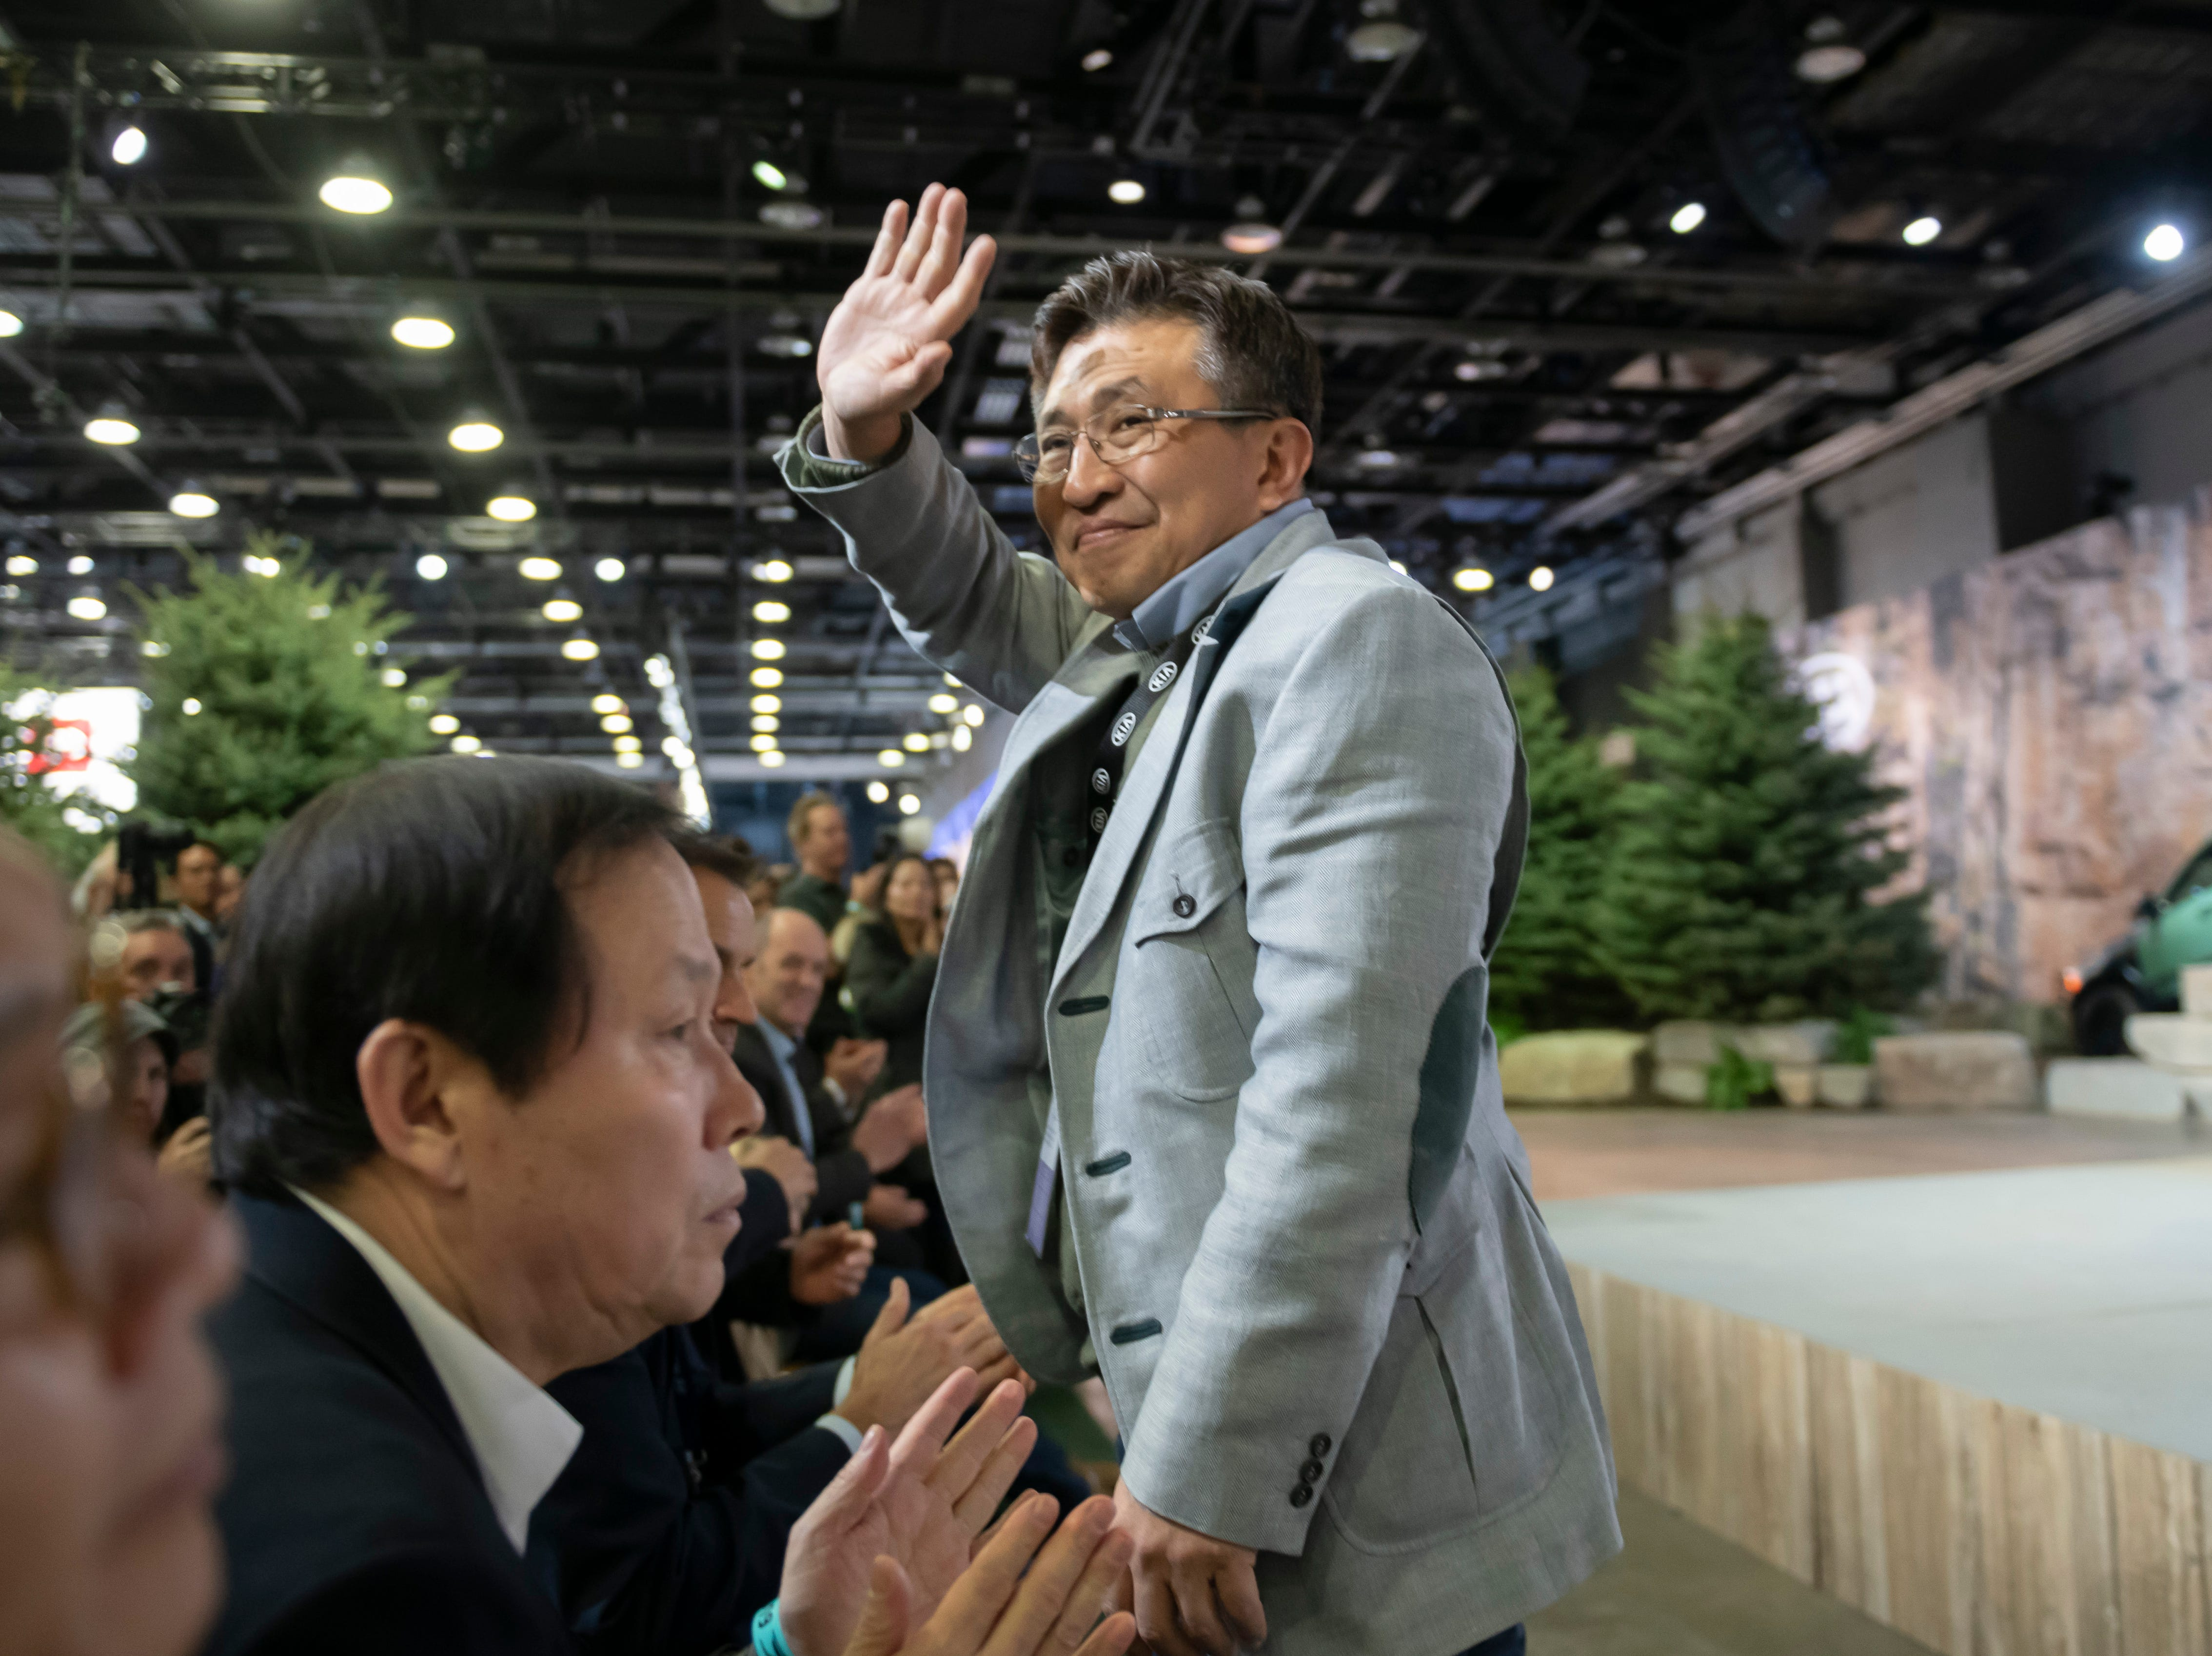 Seungkyu (Sean) Yoon, president and CEO of Kia Motors America, waves to the gathered journalists during the 2020 Kia Telluride reveal.